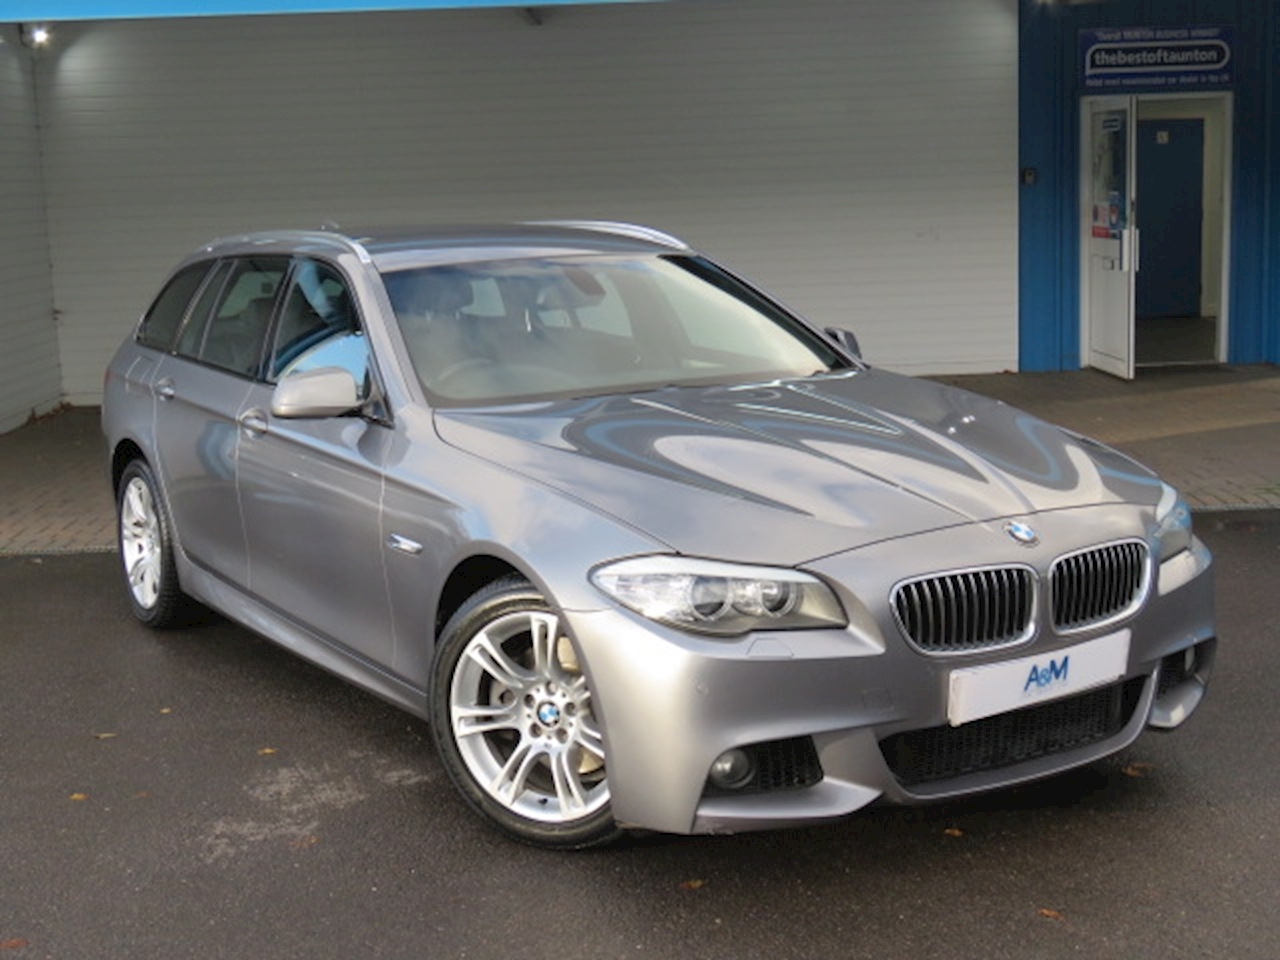 BMW Bmw 5 Series 520D M Sport Touring Estate 2.0 Automatic Diesel